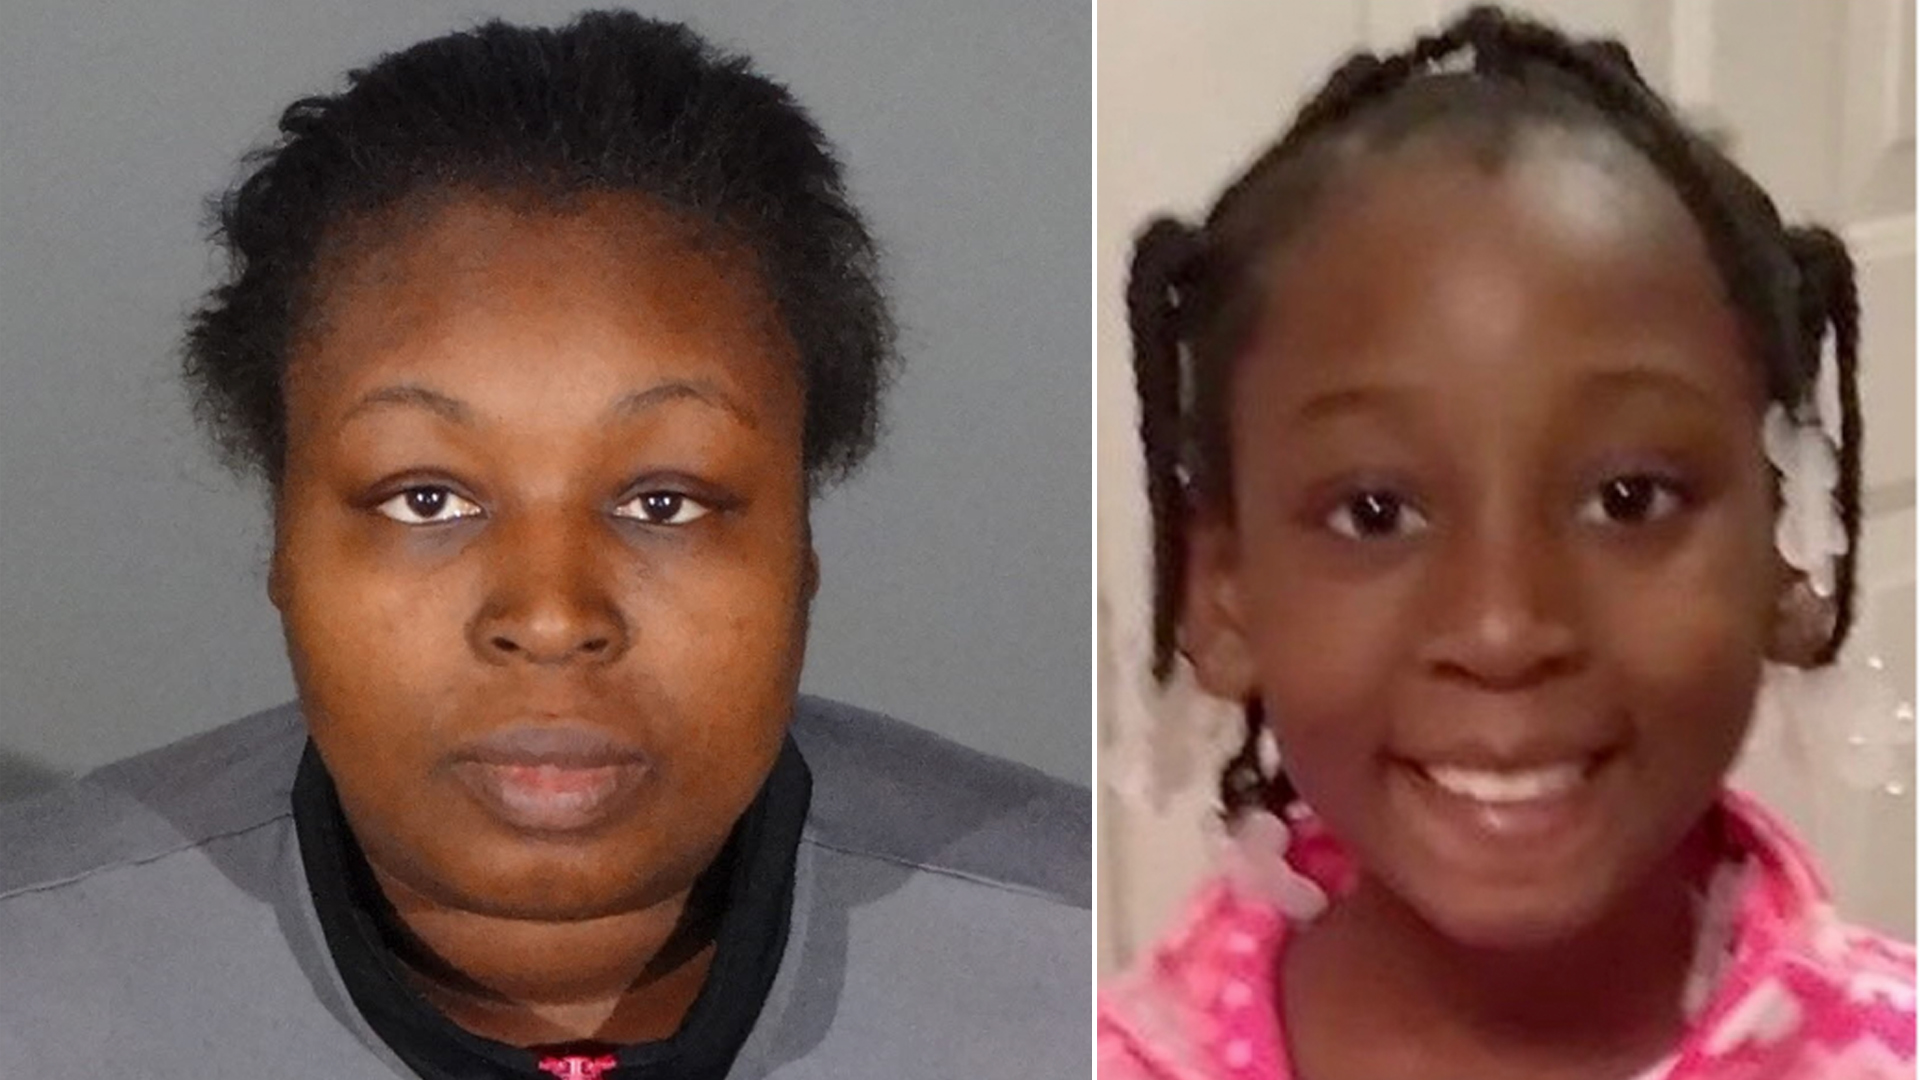 Taquesta Graham, 28, is seen in an undated booking photo provided by the Los Angeles County Sheriff's Department (left.) Trinity Love jones is seen in an undated photo provided by the department (right.)